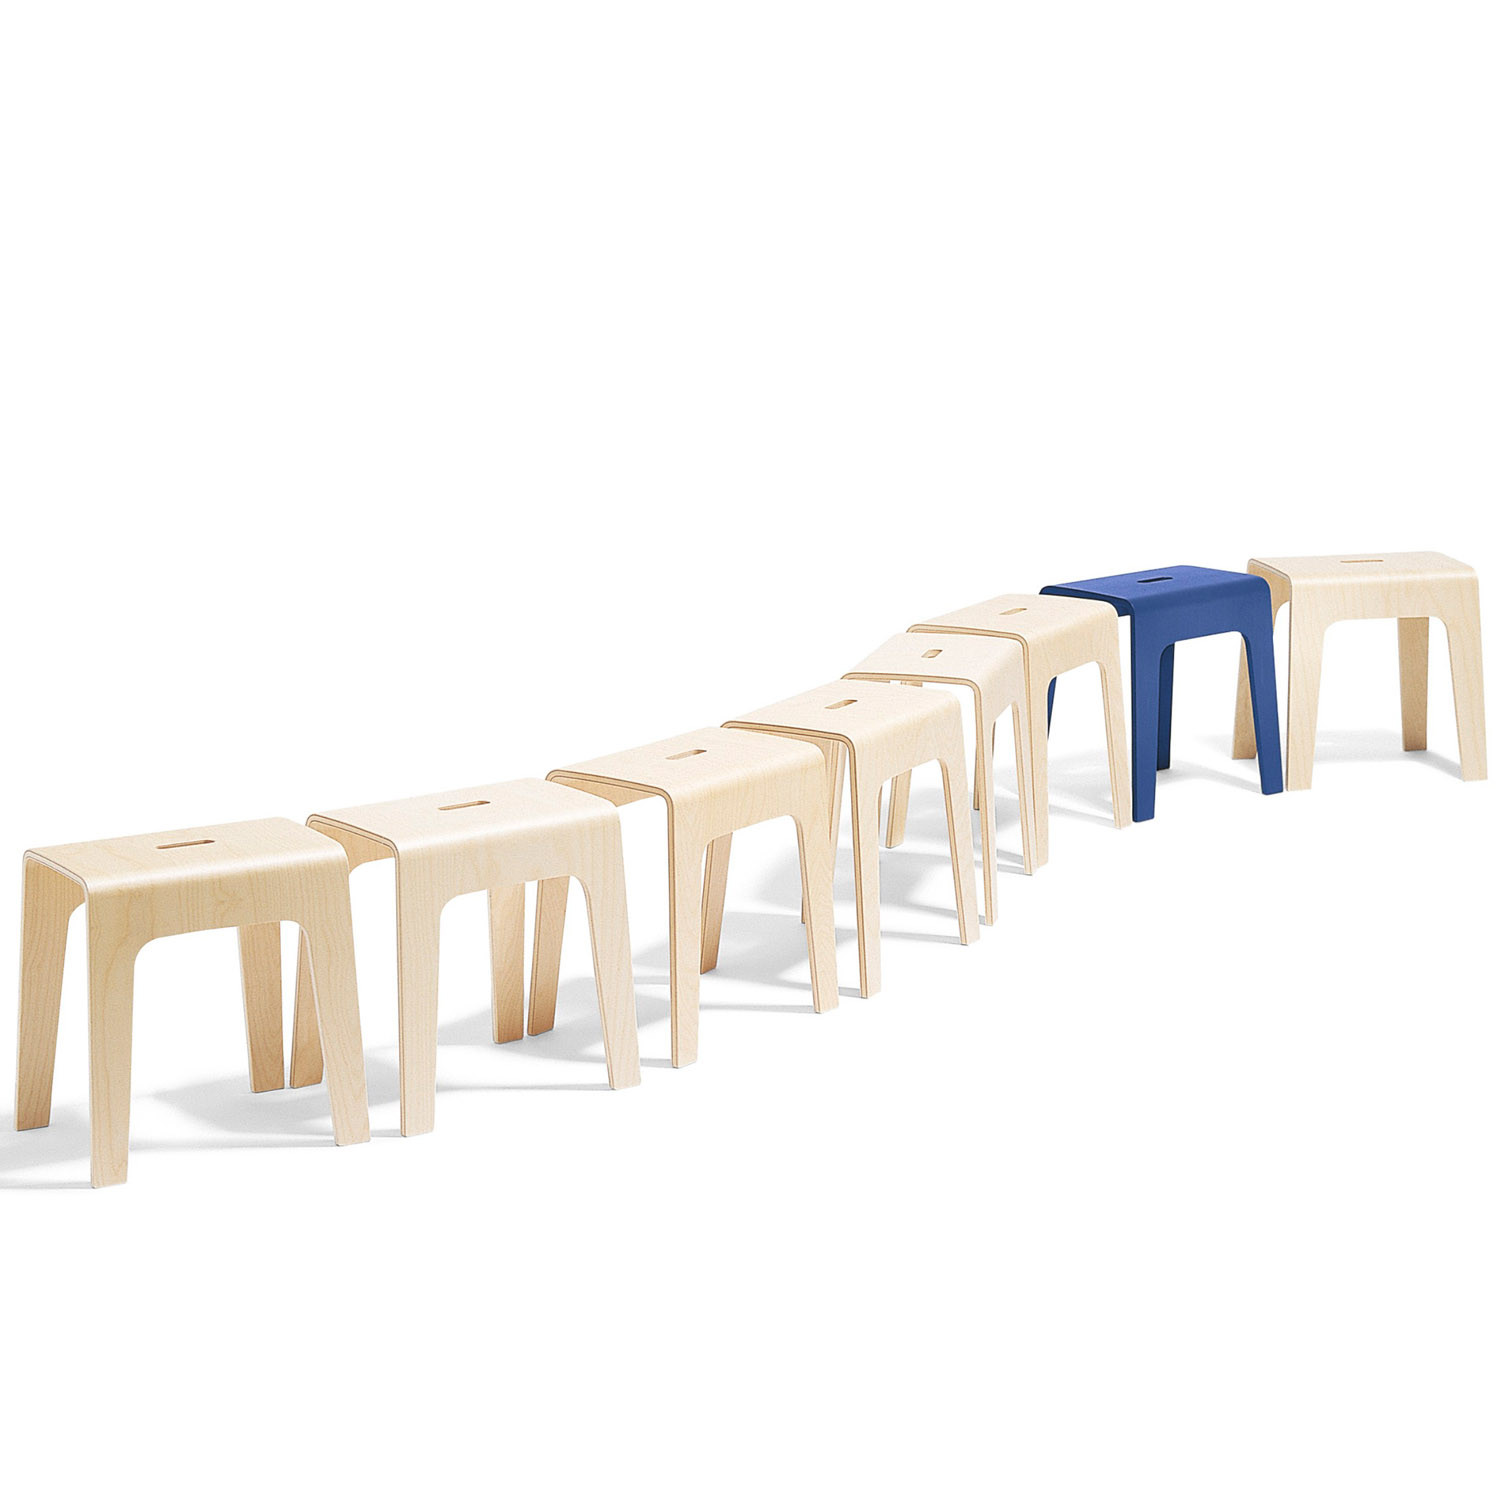 Bimbo Stool O60 by Bla Station